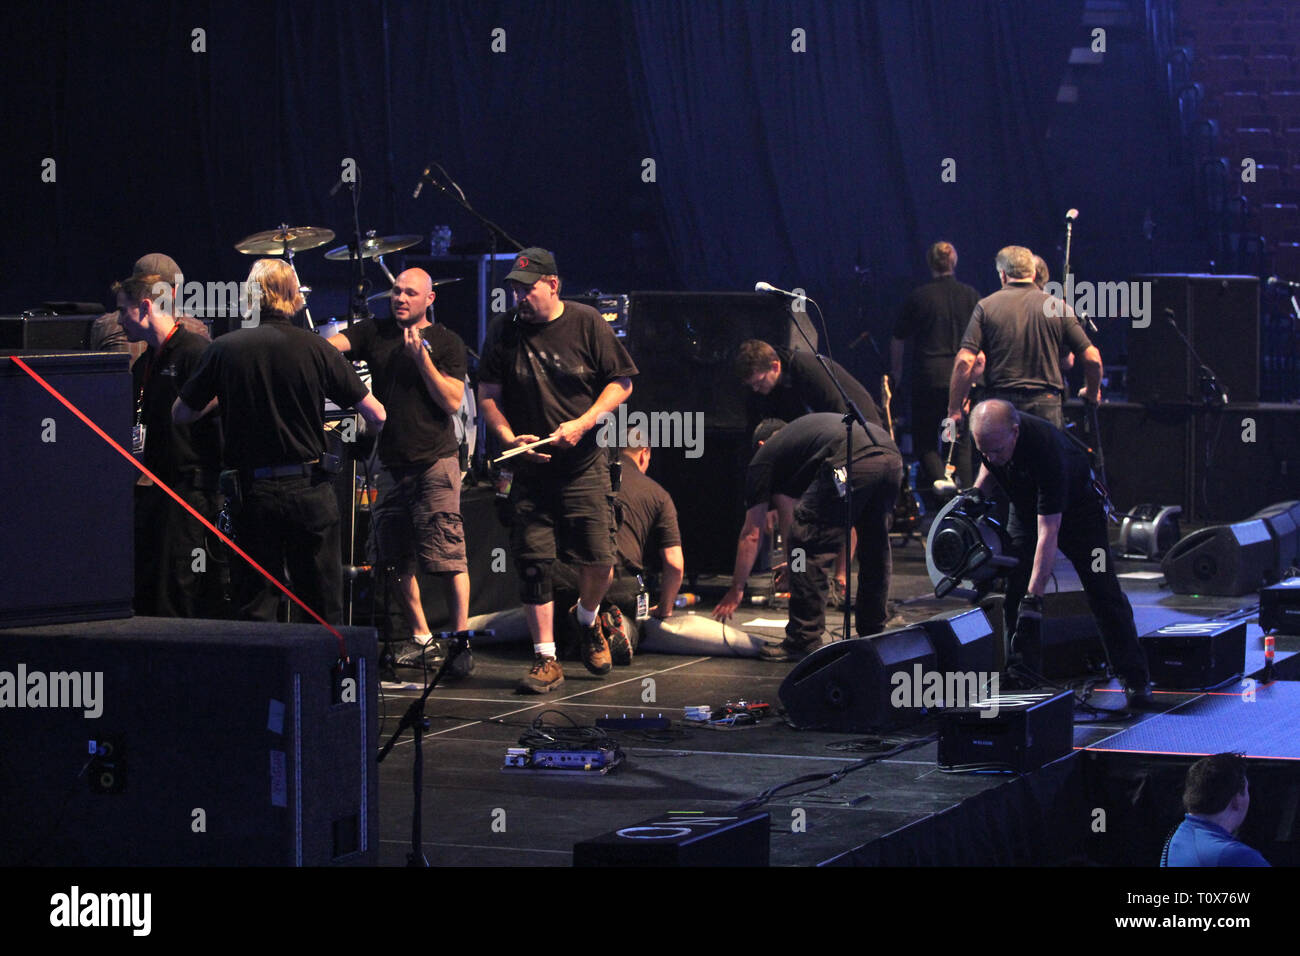 Stage hands are shown working on an equipment changeover in between acts a 'live' concert performance. - Stock Image